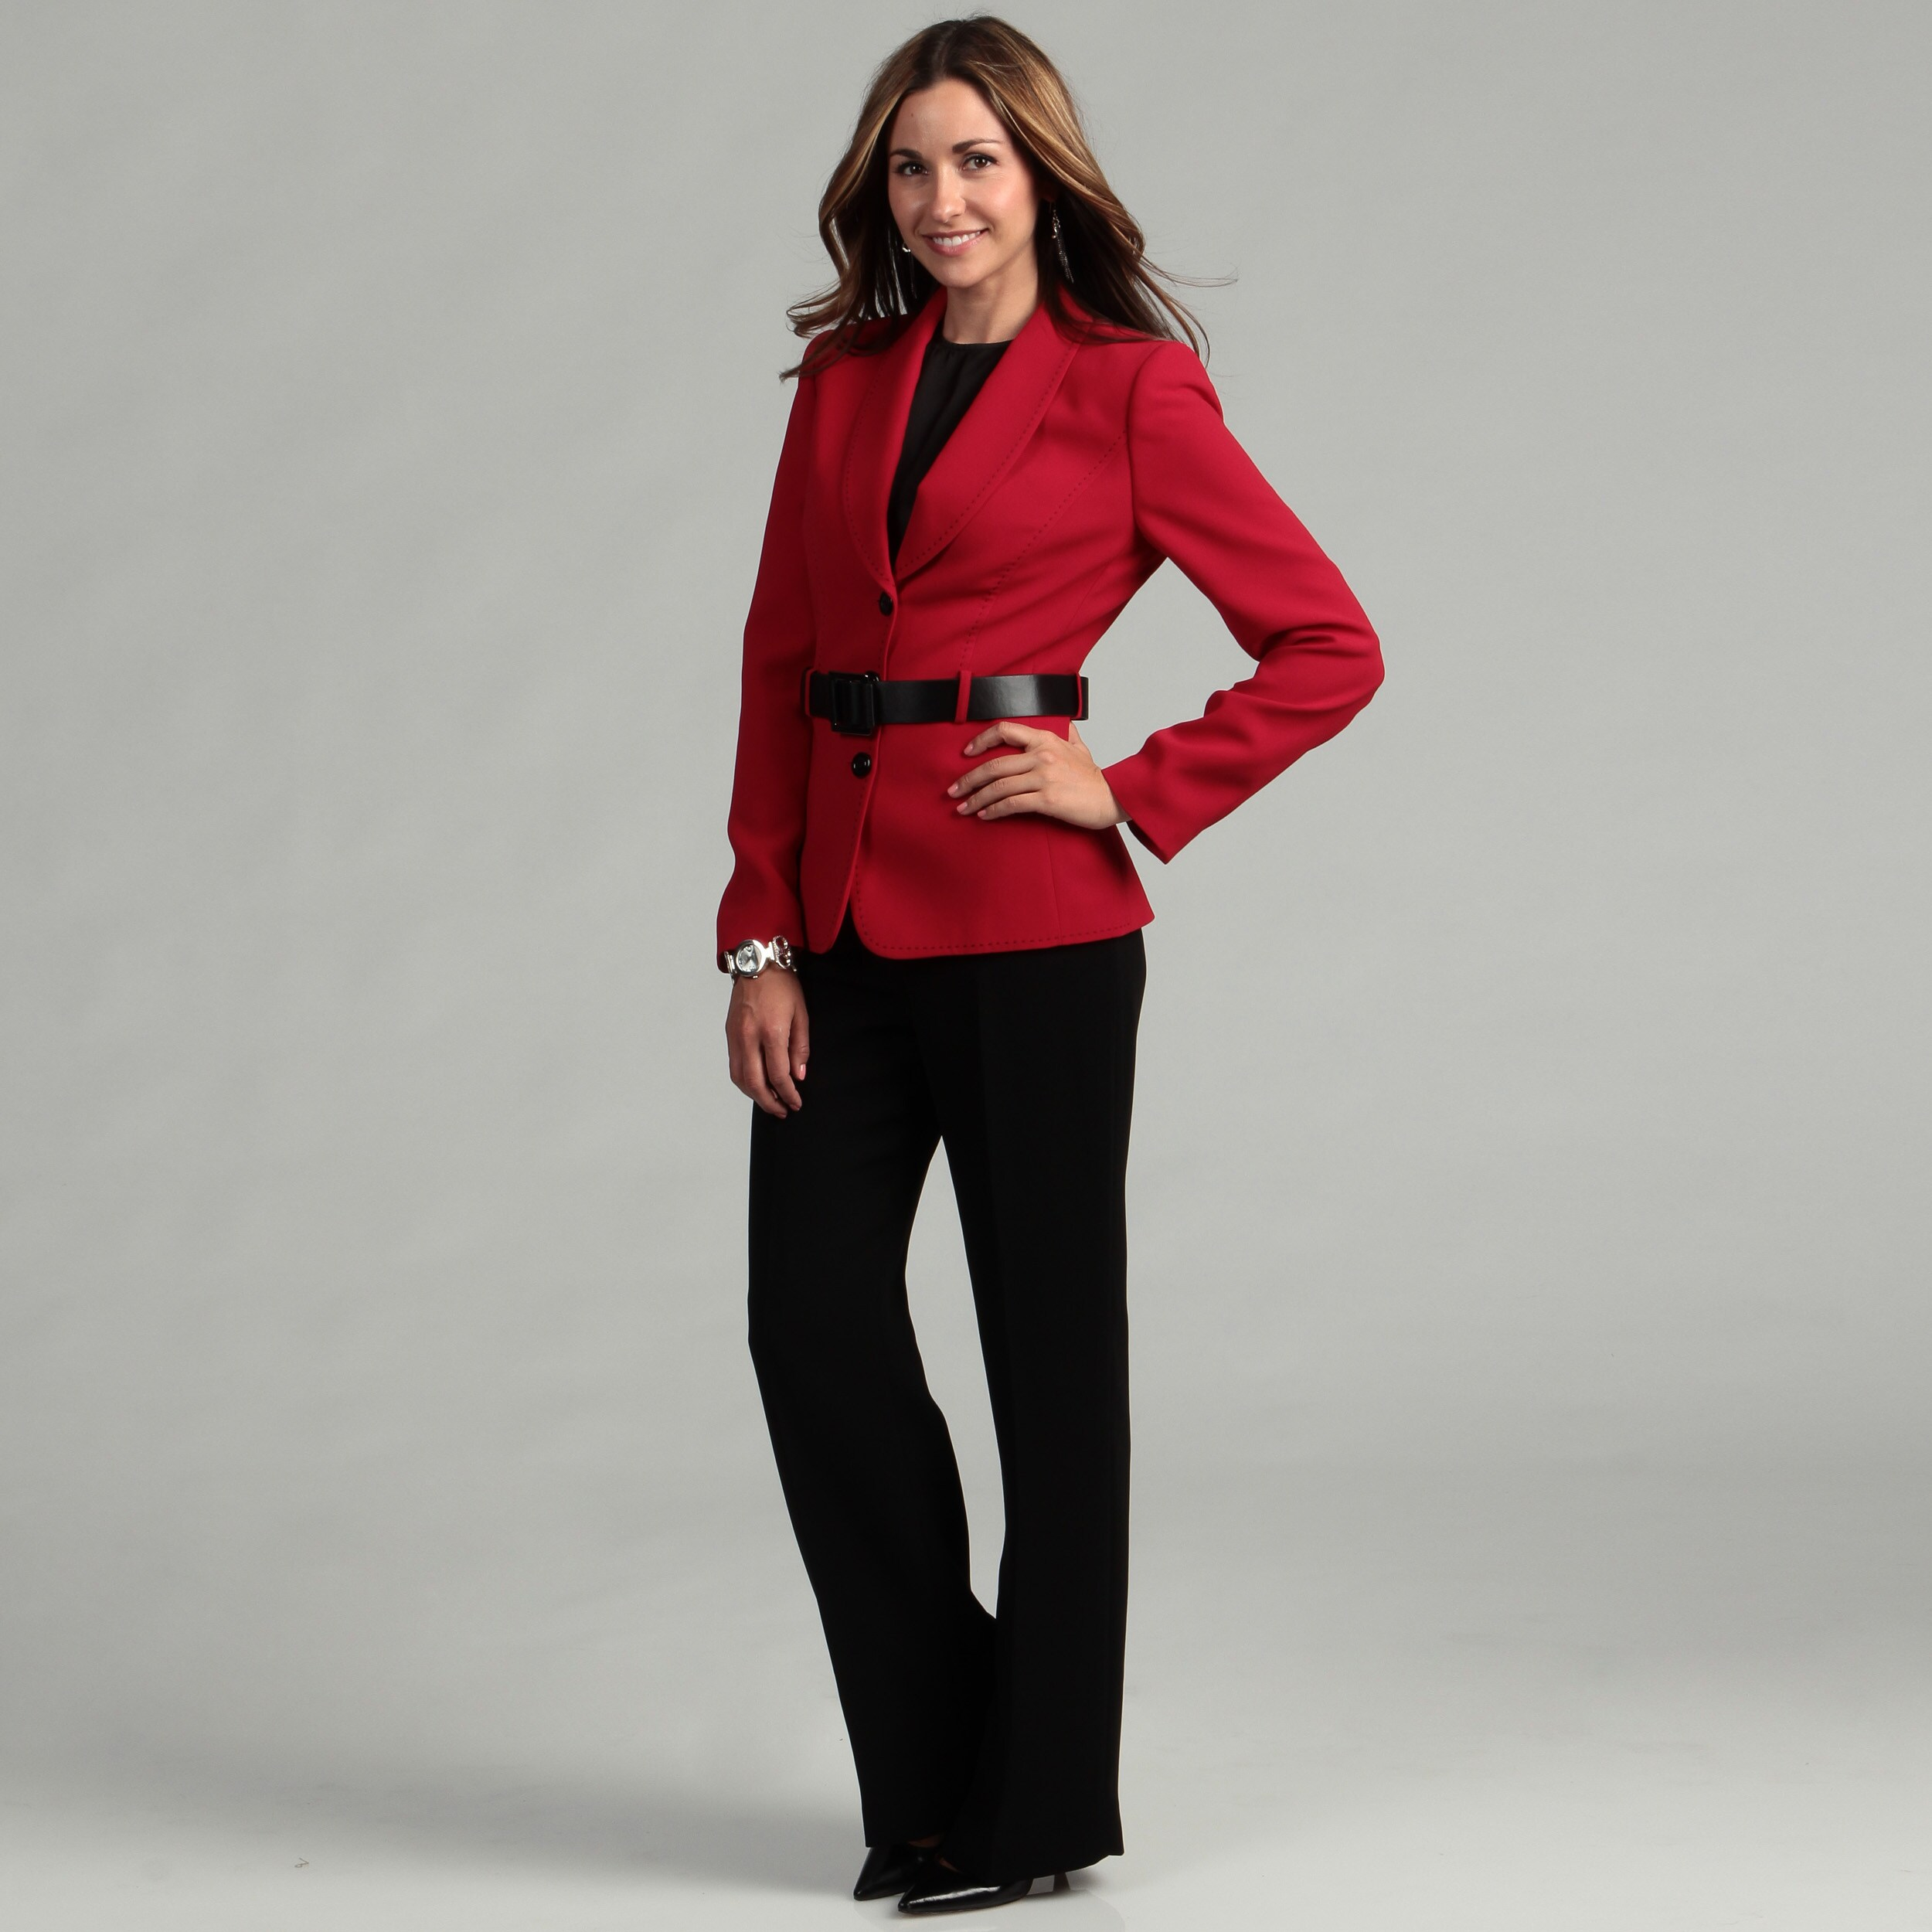 Wonderful Tahari ASL Women39s Red 3button Pant Suit  12960084  Overstockcom